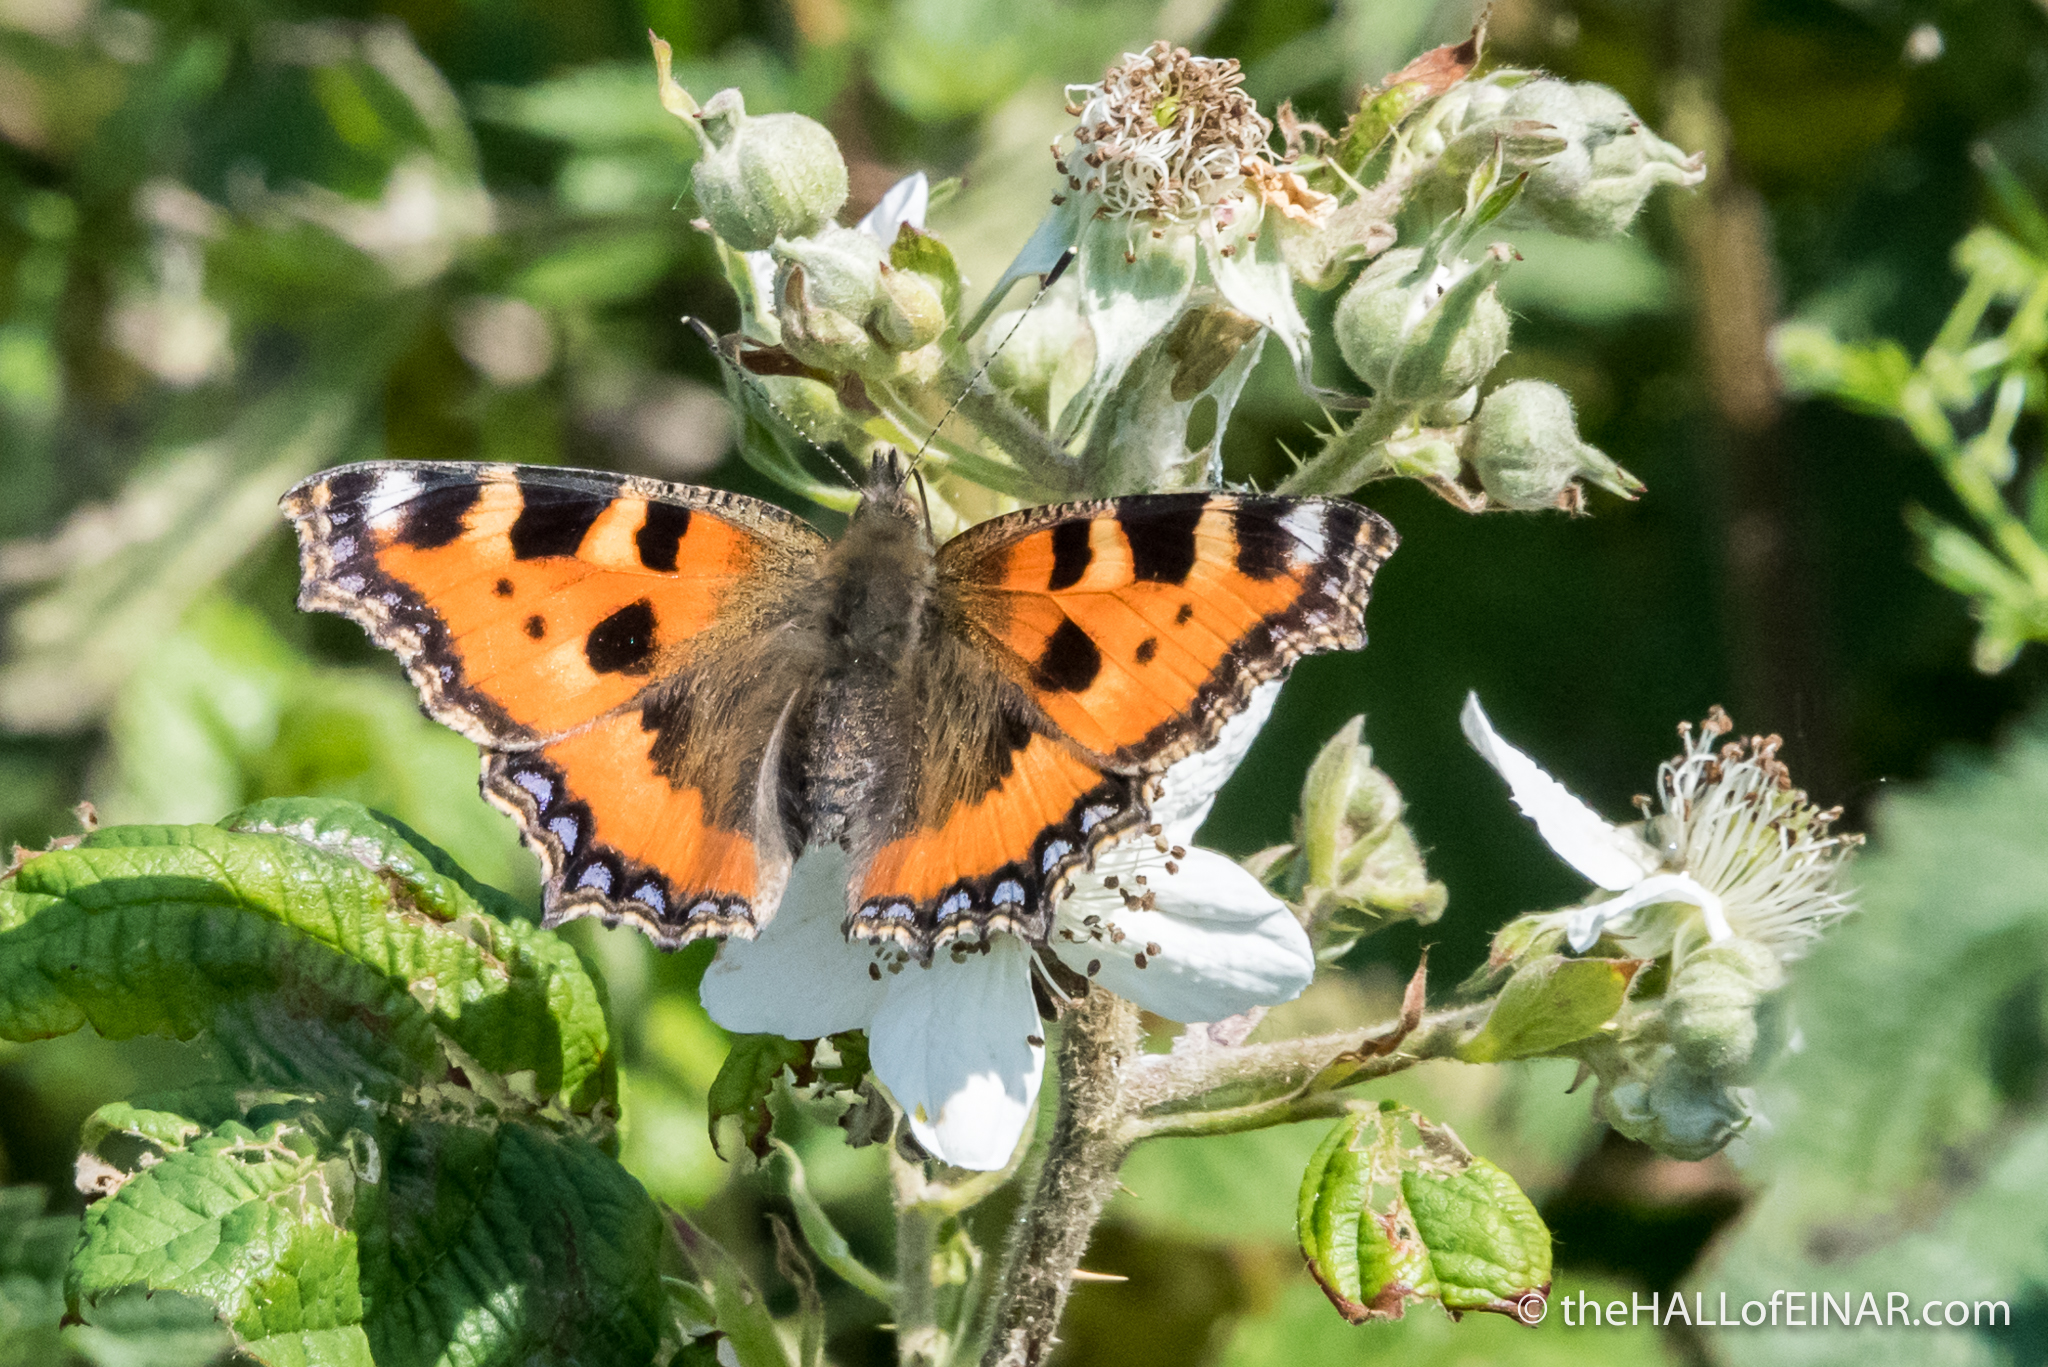 Small Tortoishell - The Hall of Einar - photograph (c) David Bailey (not the)